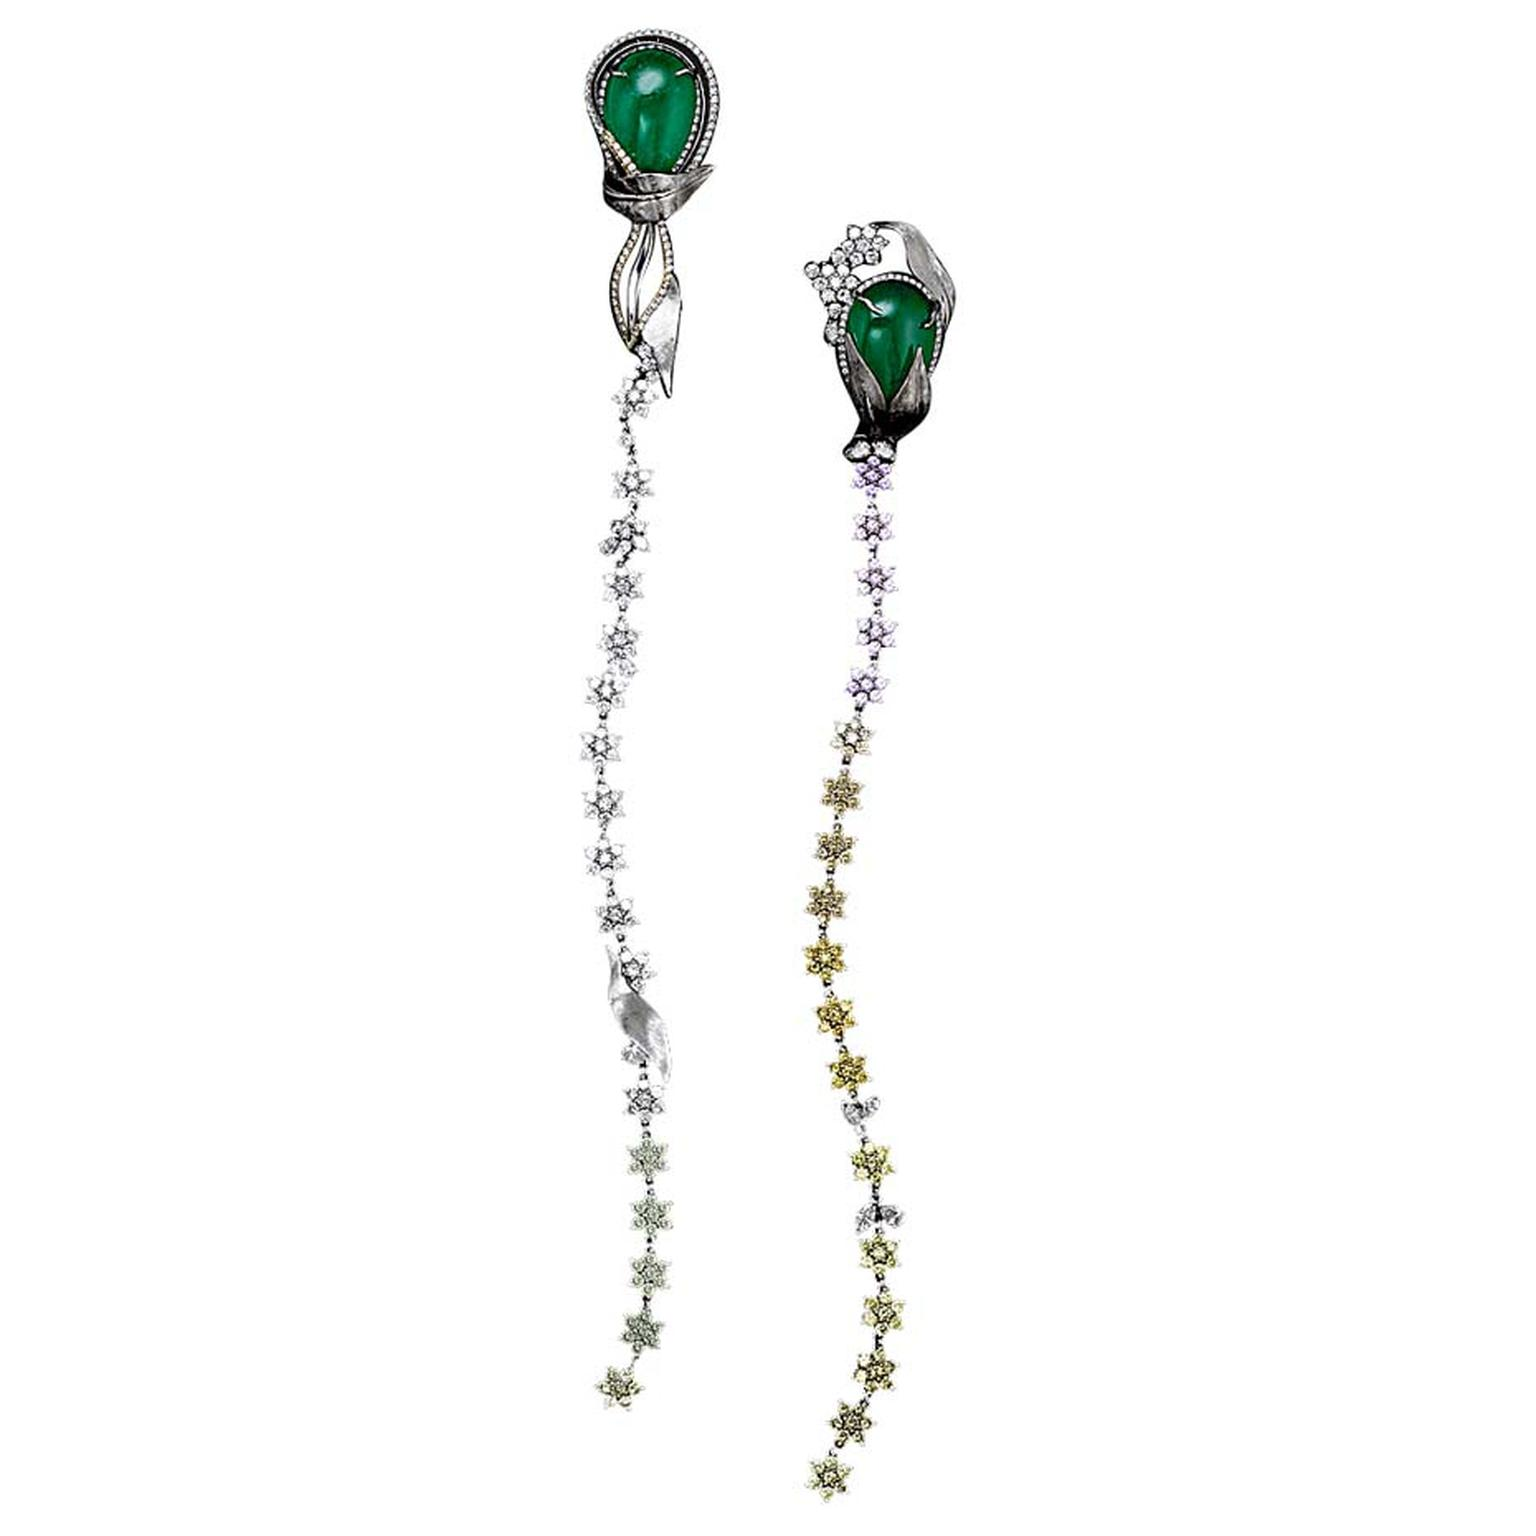 Alexandra Mor emerald and diamond Flower earrings.